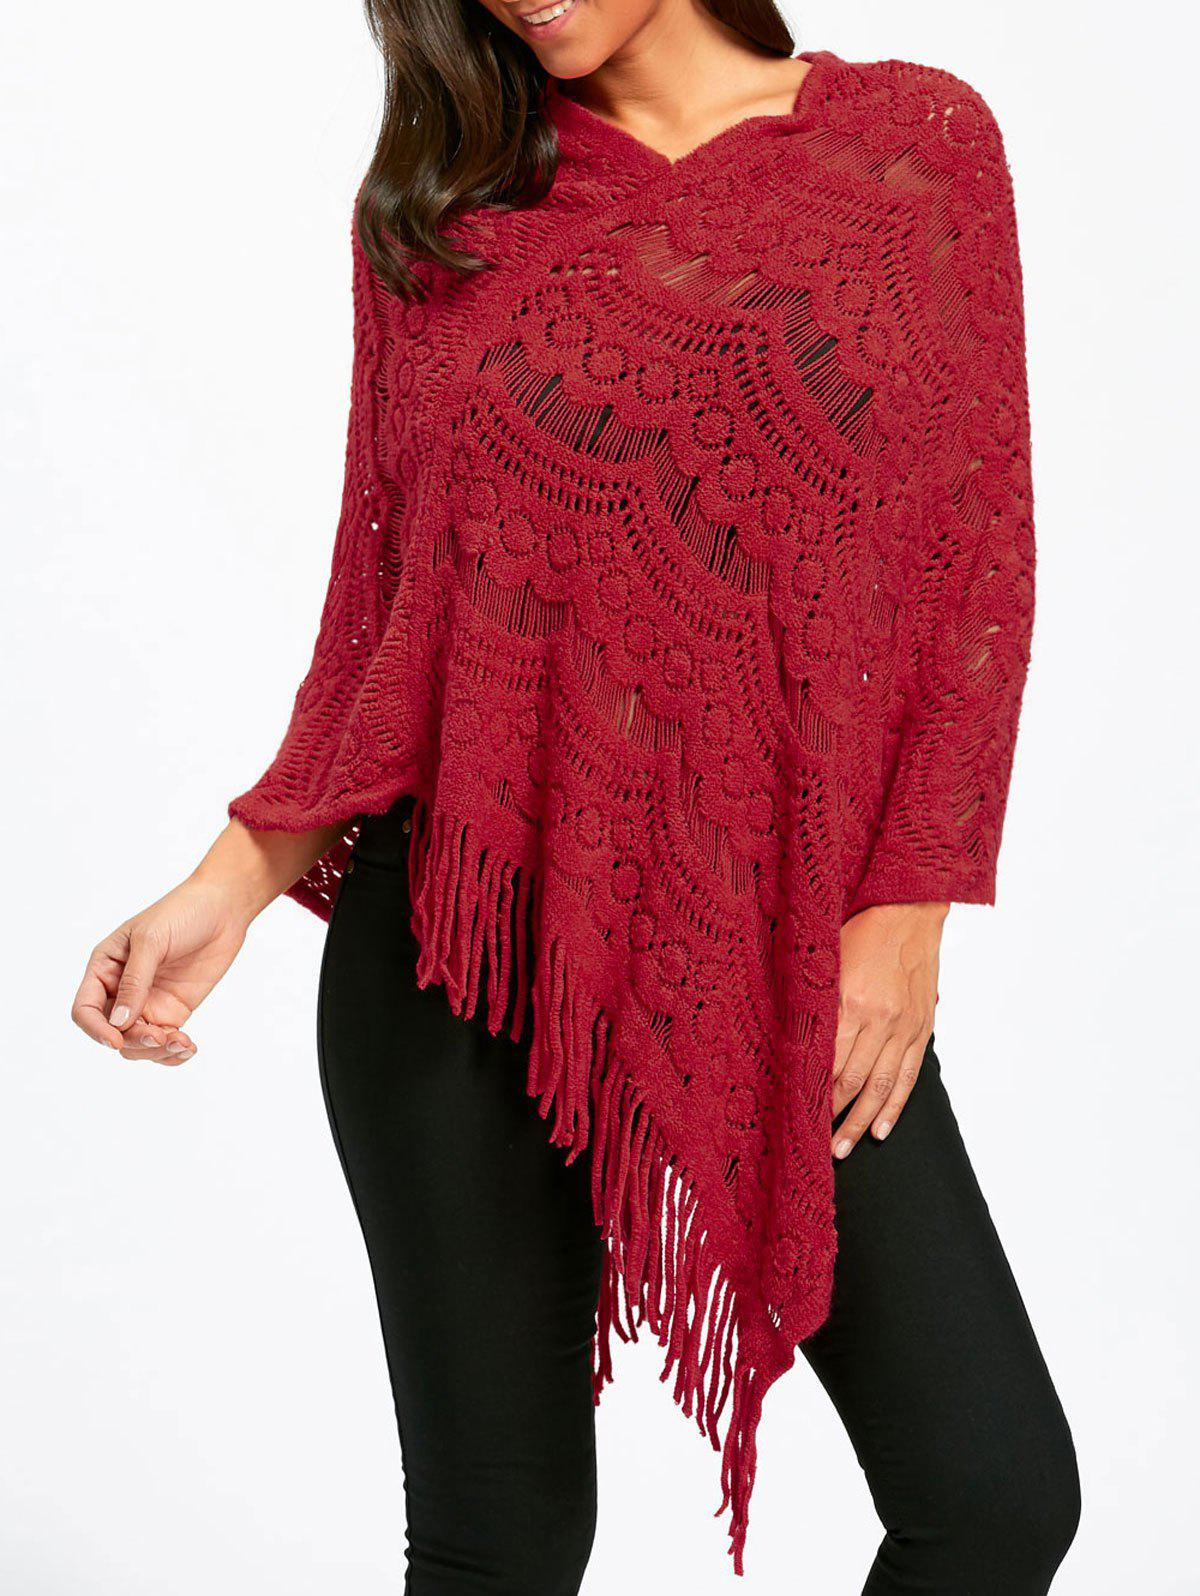 Asymmetric Fringed Pullover Chunky Poncho SweaterWOMEN<br><br>Size: ONE SIZE; Color: RED; Type: Pullovers; Material: Polyester,Spandex; Sleeve Length: Full; Collar: Round Neck; Style: Fashion; Pattern Type: Solid; Season: Fall,Spring; Weight: 0.3500kg; Package Contents: 1 x Sweater;